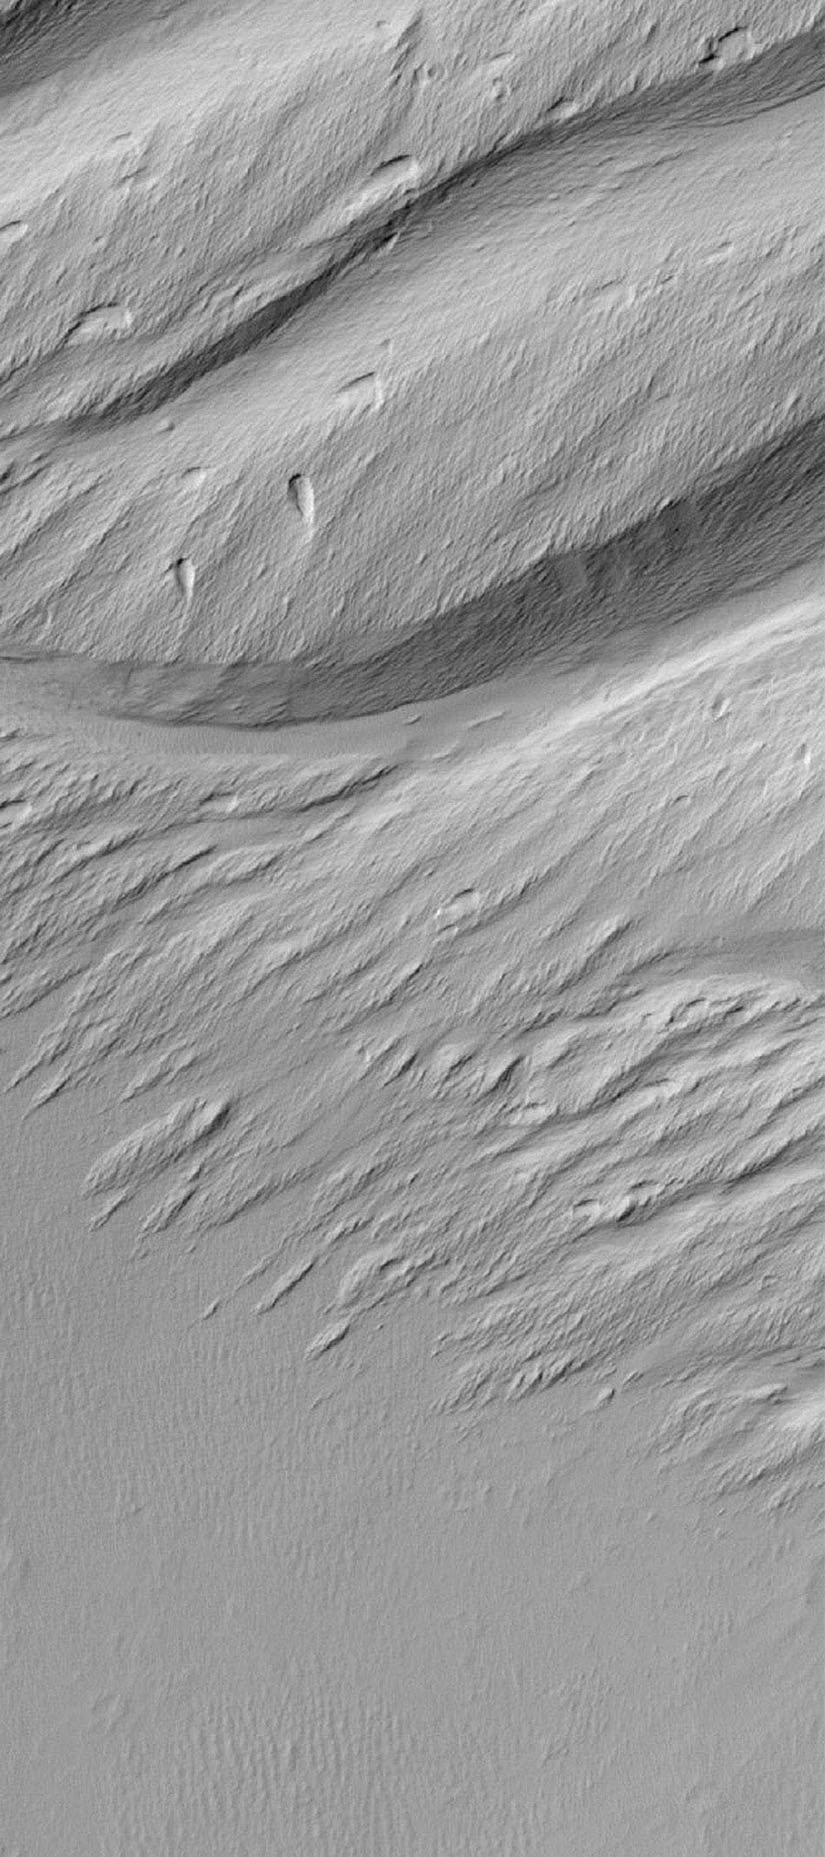 NASA's Mars Global Surveyor shows a contact between a dust-covered plain and a dust-mantled, textured upland in the Memnonia Sulci region of Mars.